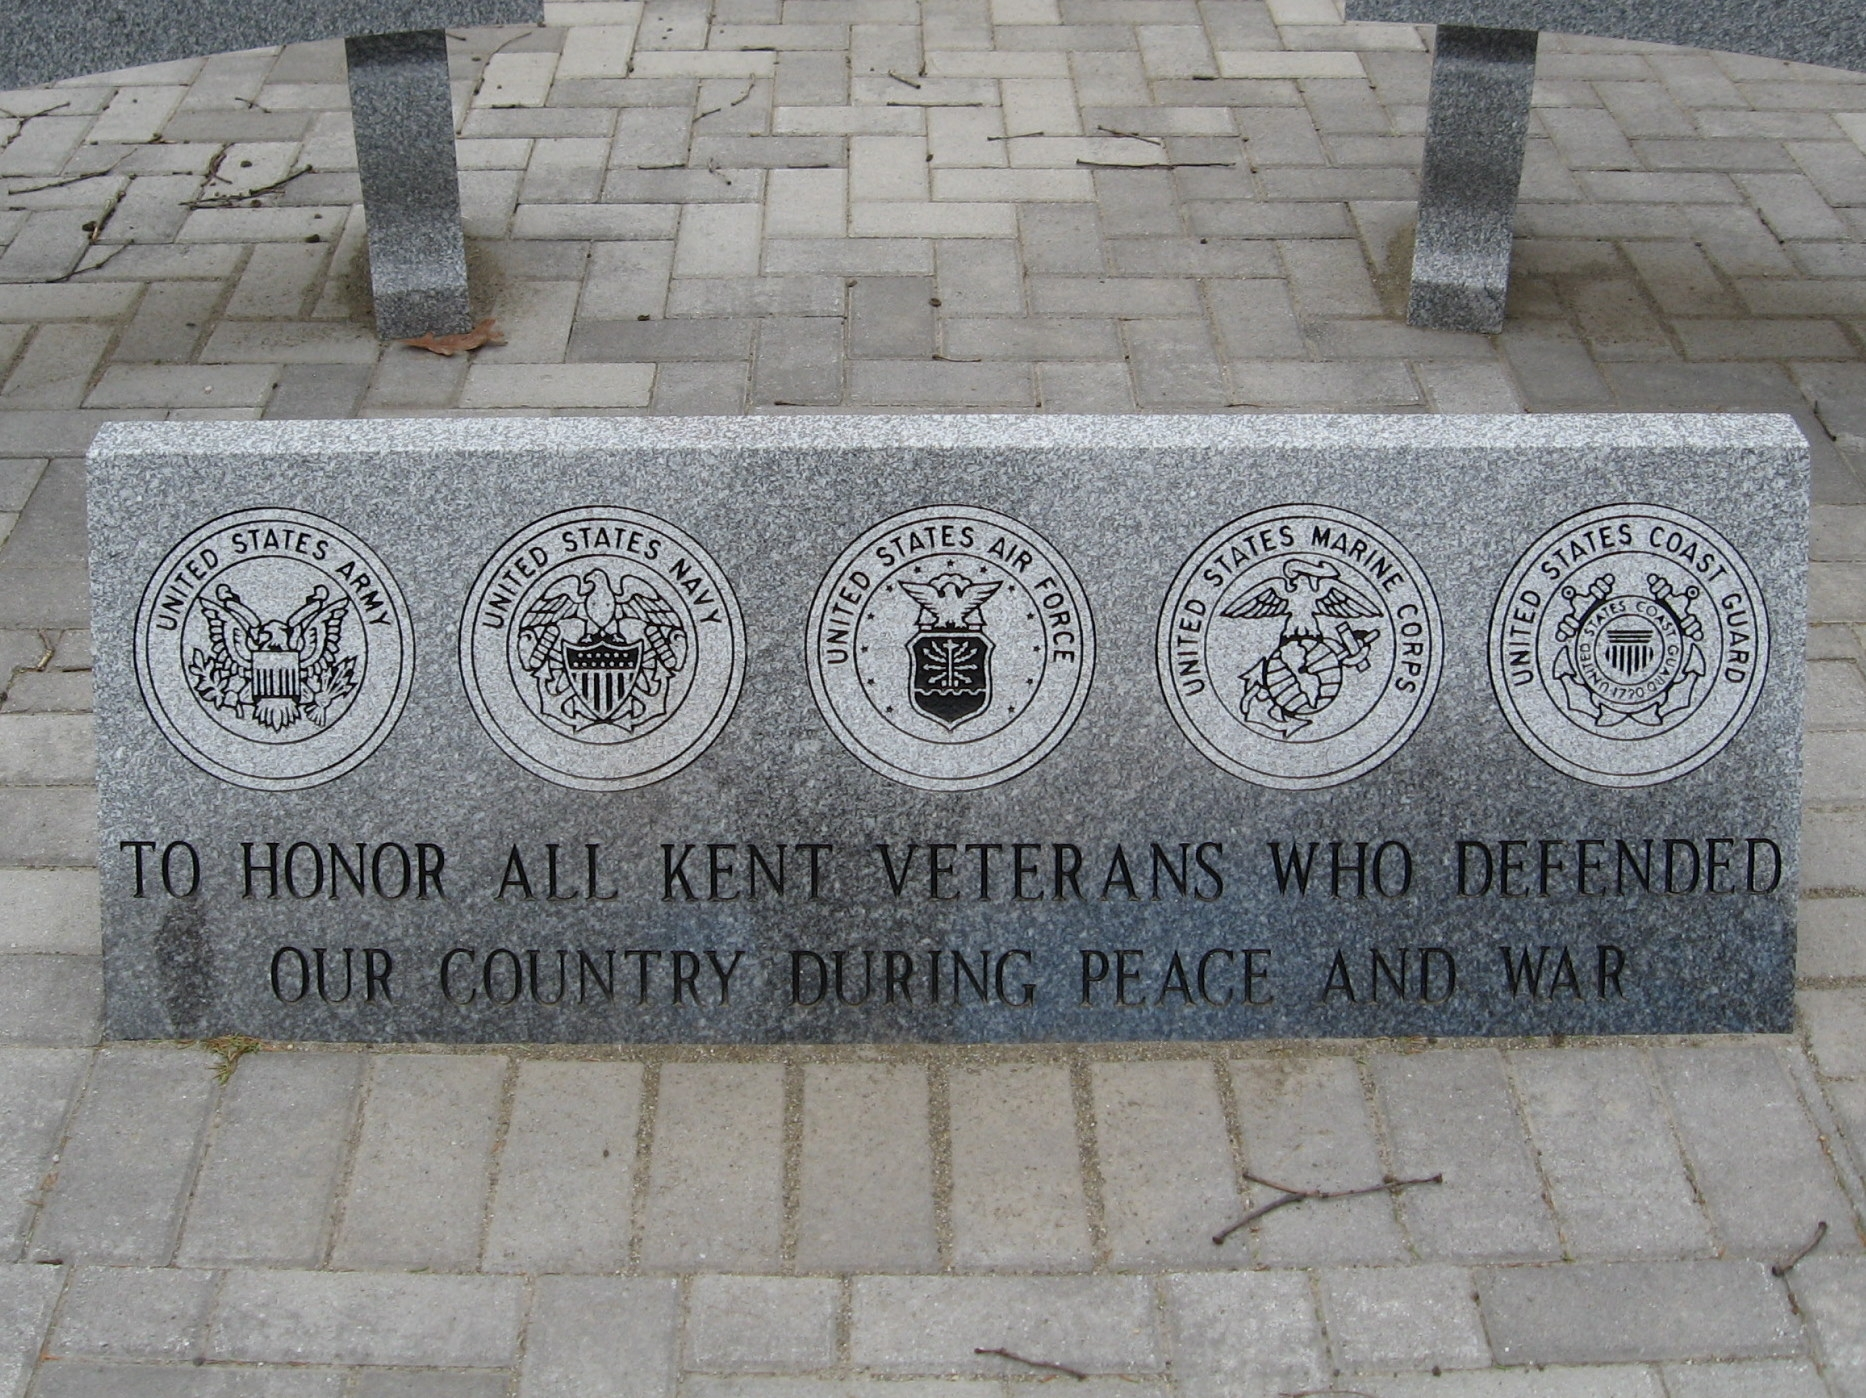 Kent Veterans Monument